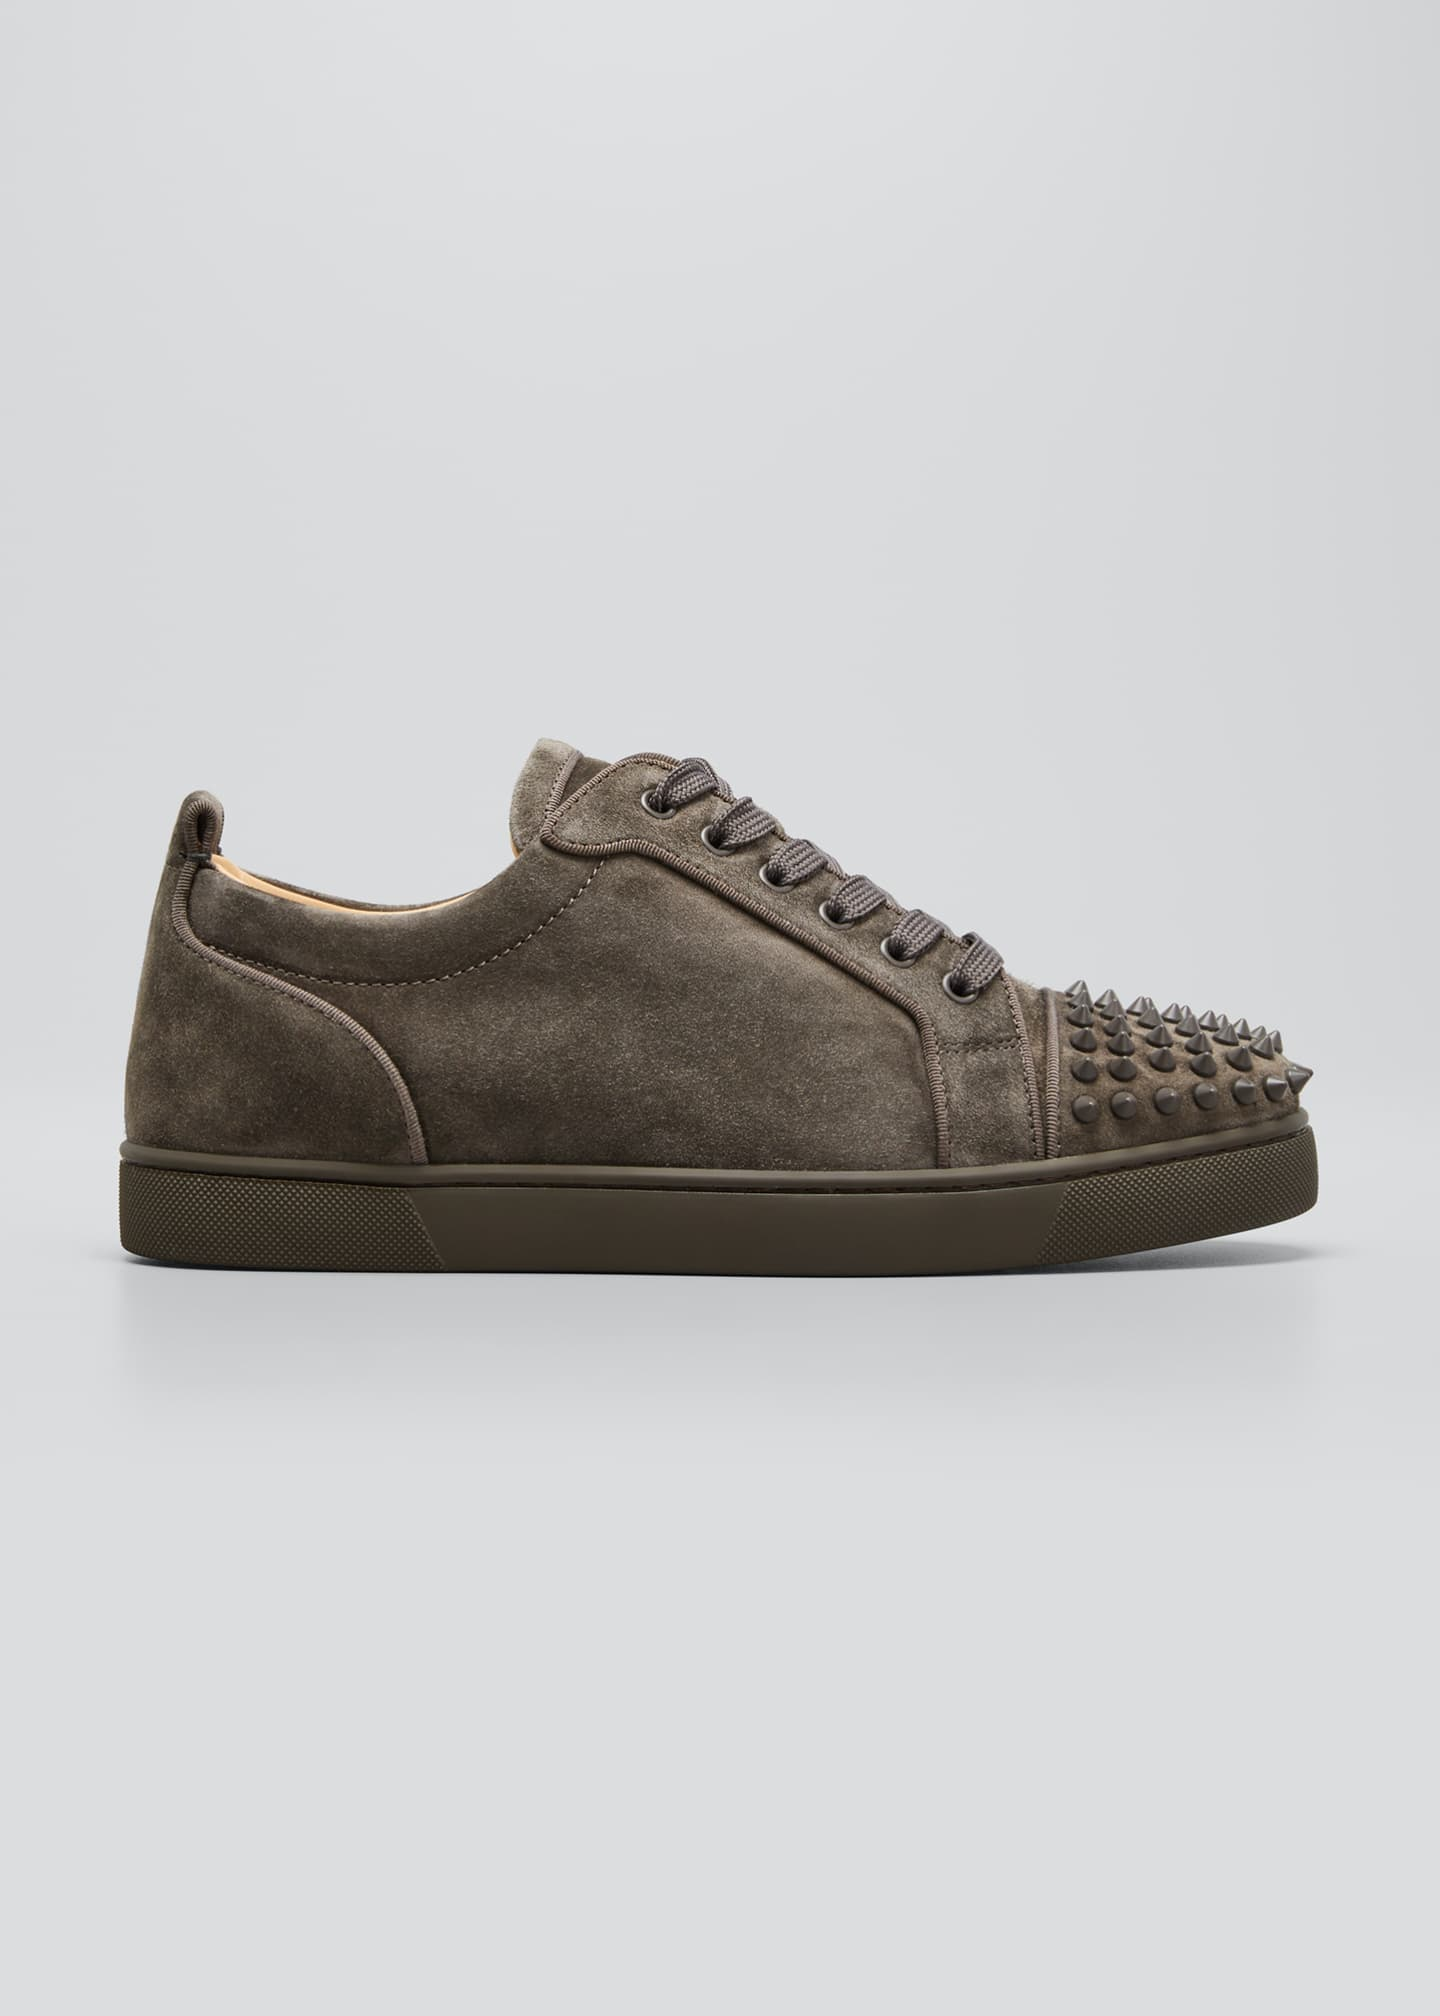 Christian Louboutin Men's Louis Junior Suede Spiked Low-Top